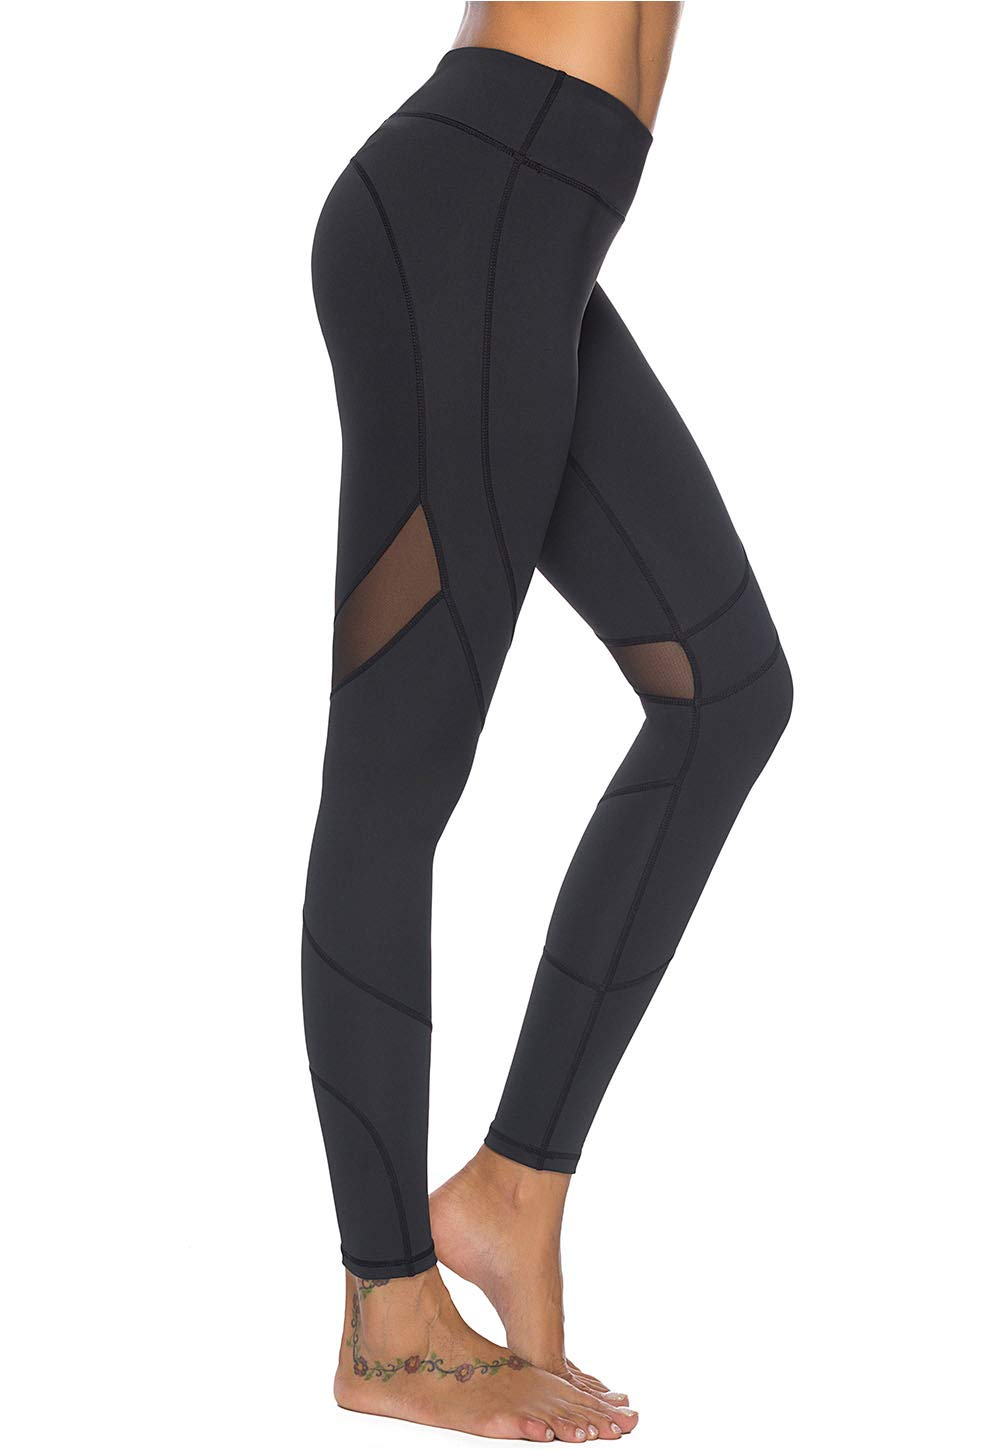 Mint Lilac Women's High Waist Full-Length Leggings Athletic Workout Pants with Mesh Panelss Small Black by Mint Lilac